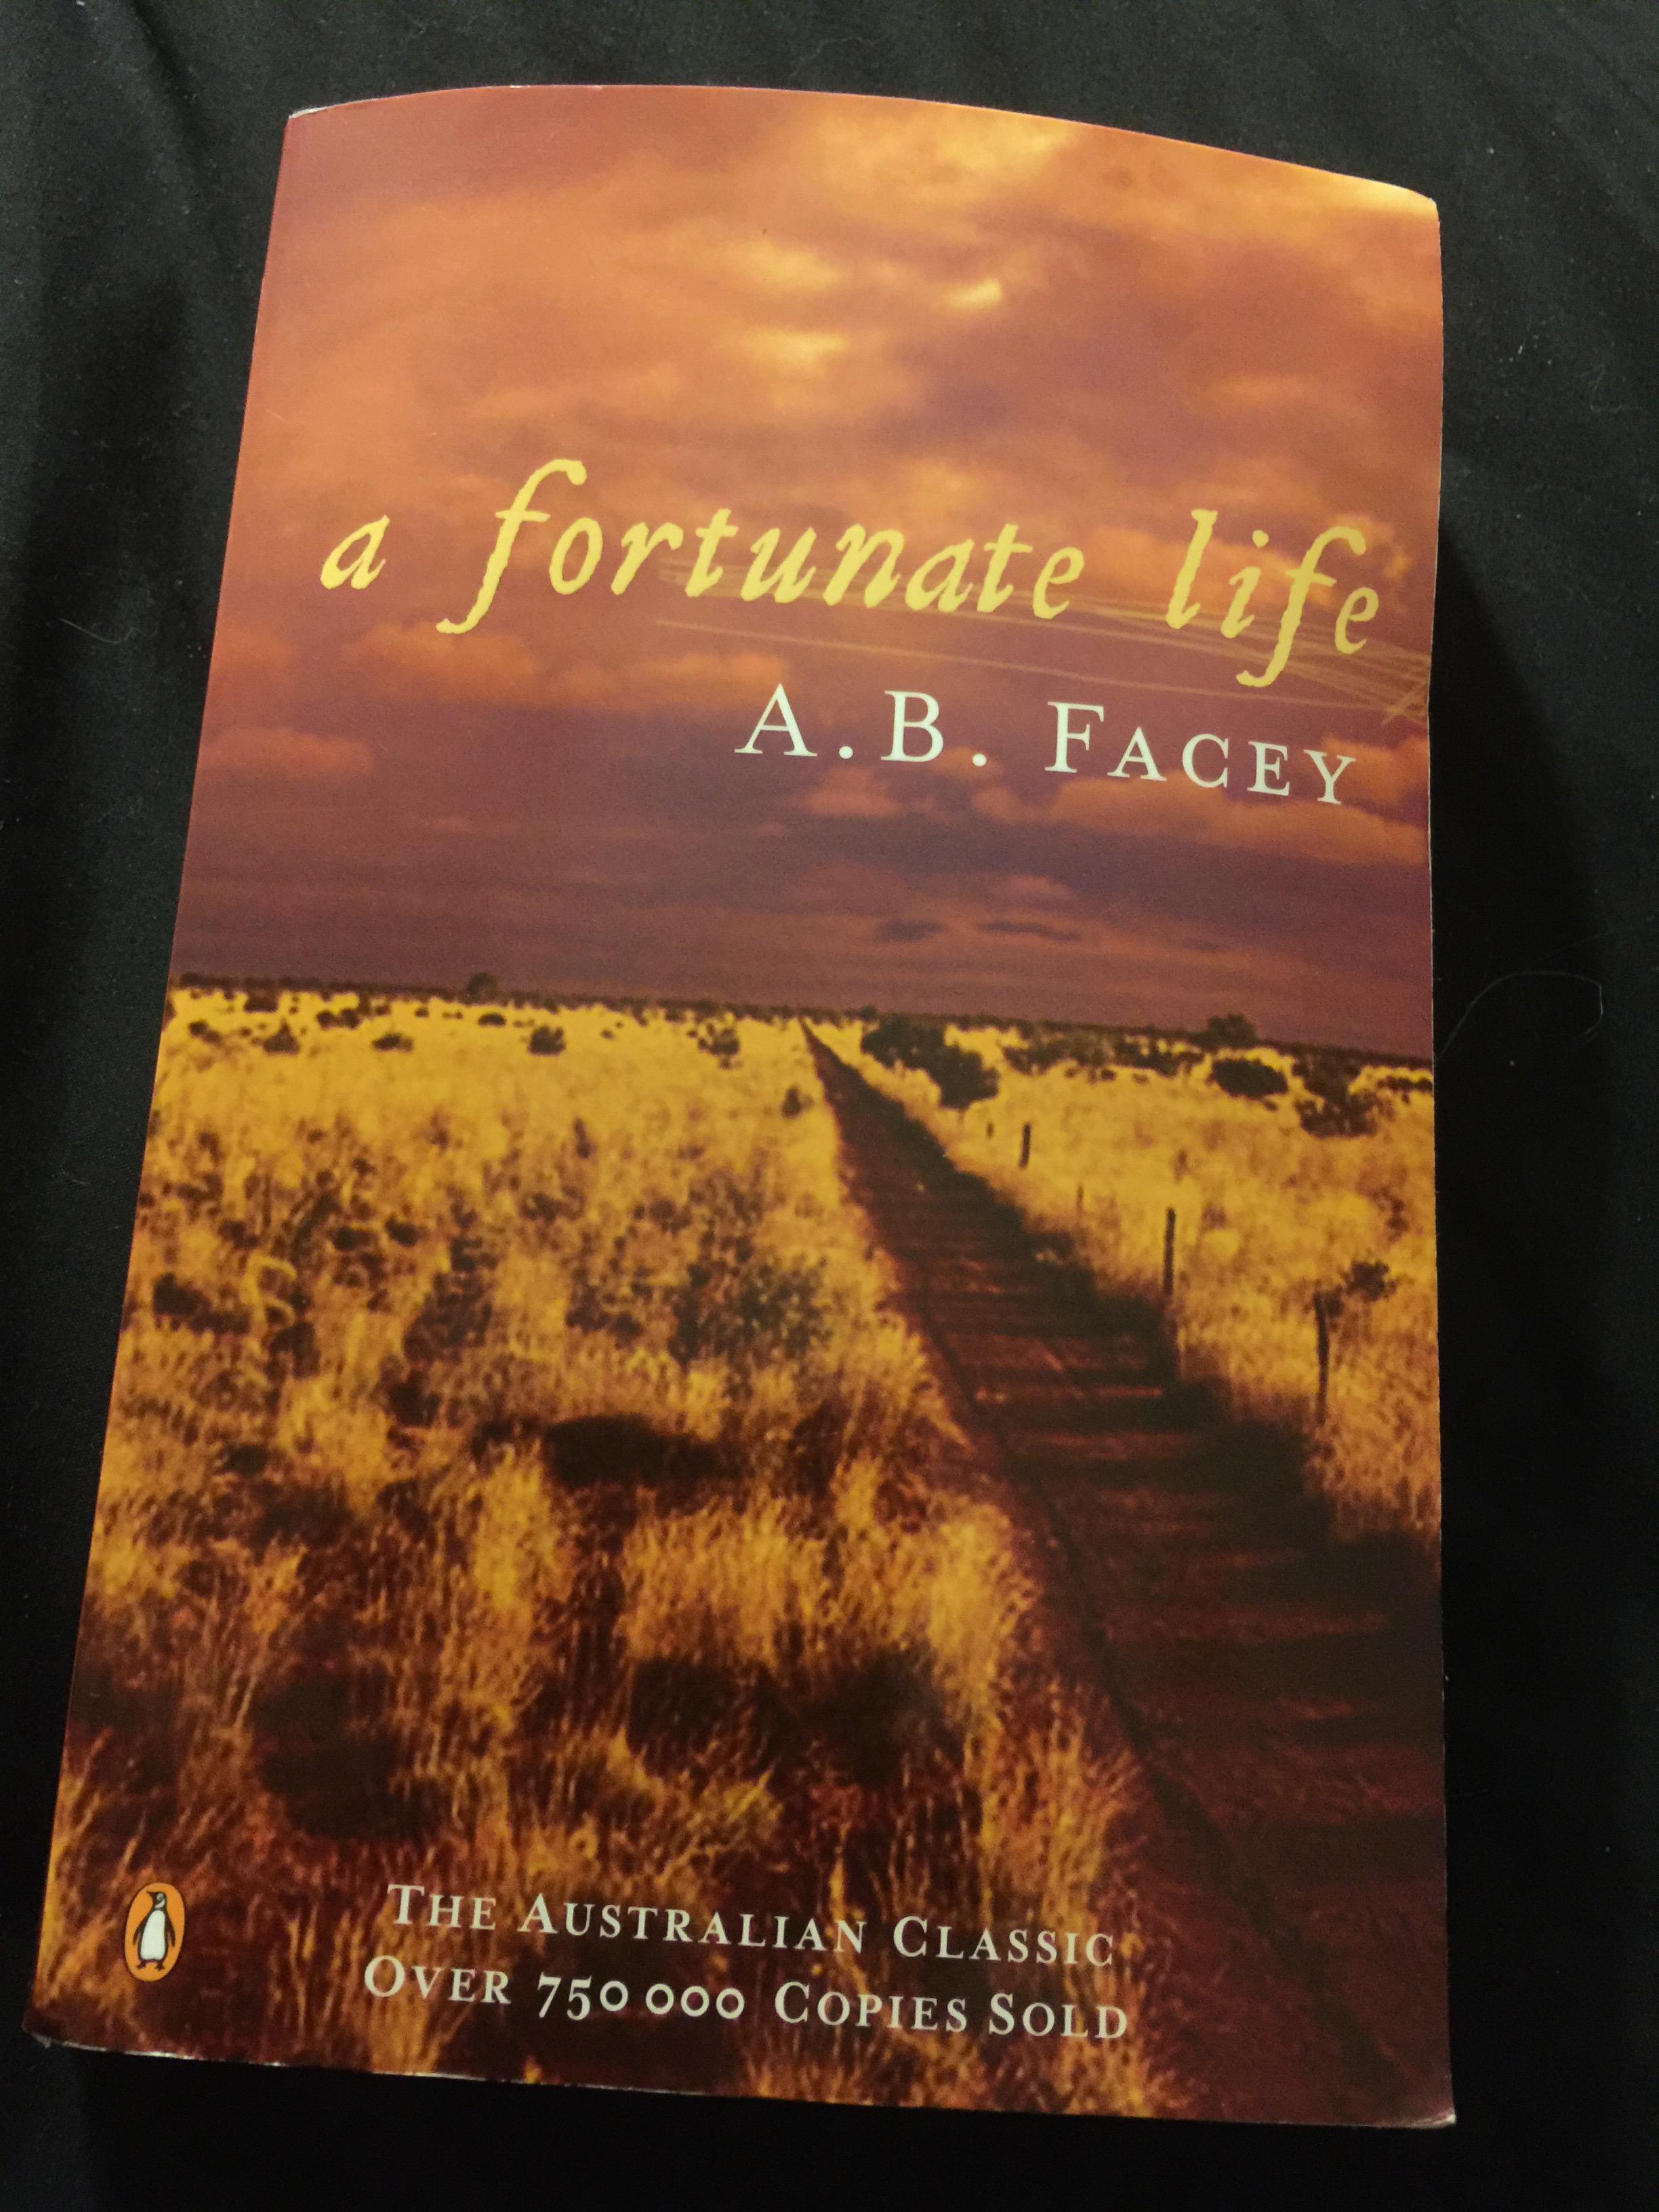 So Ive Started Reading The Autobiography A Fortunate Life By AB Facey And Its Time To Give Book Report I Know What Youre Thinking Hold Your Horses